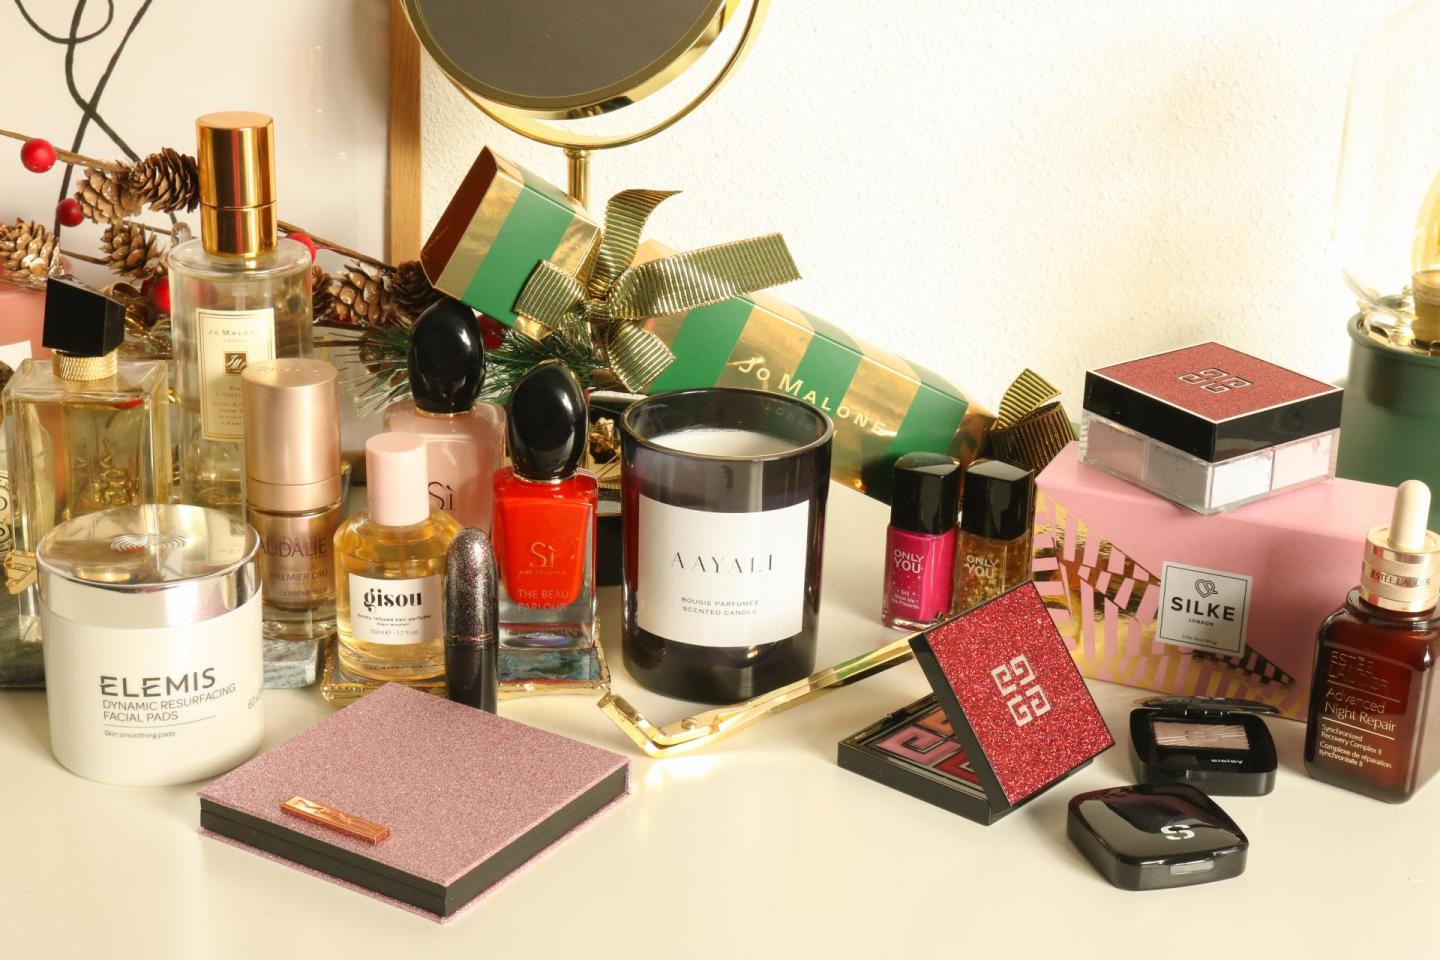 Christmas gift guide: what to gift your loved ones